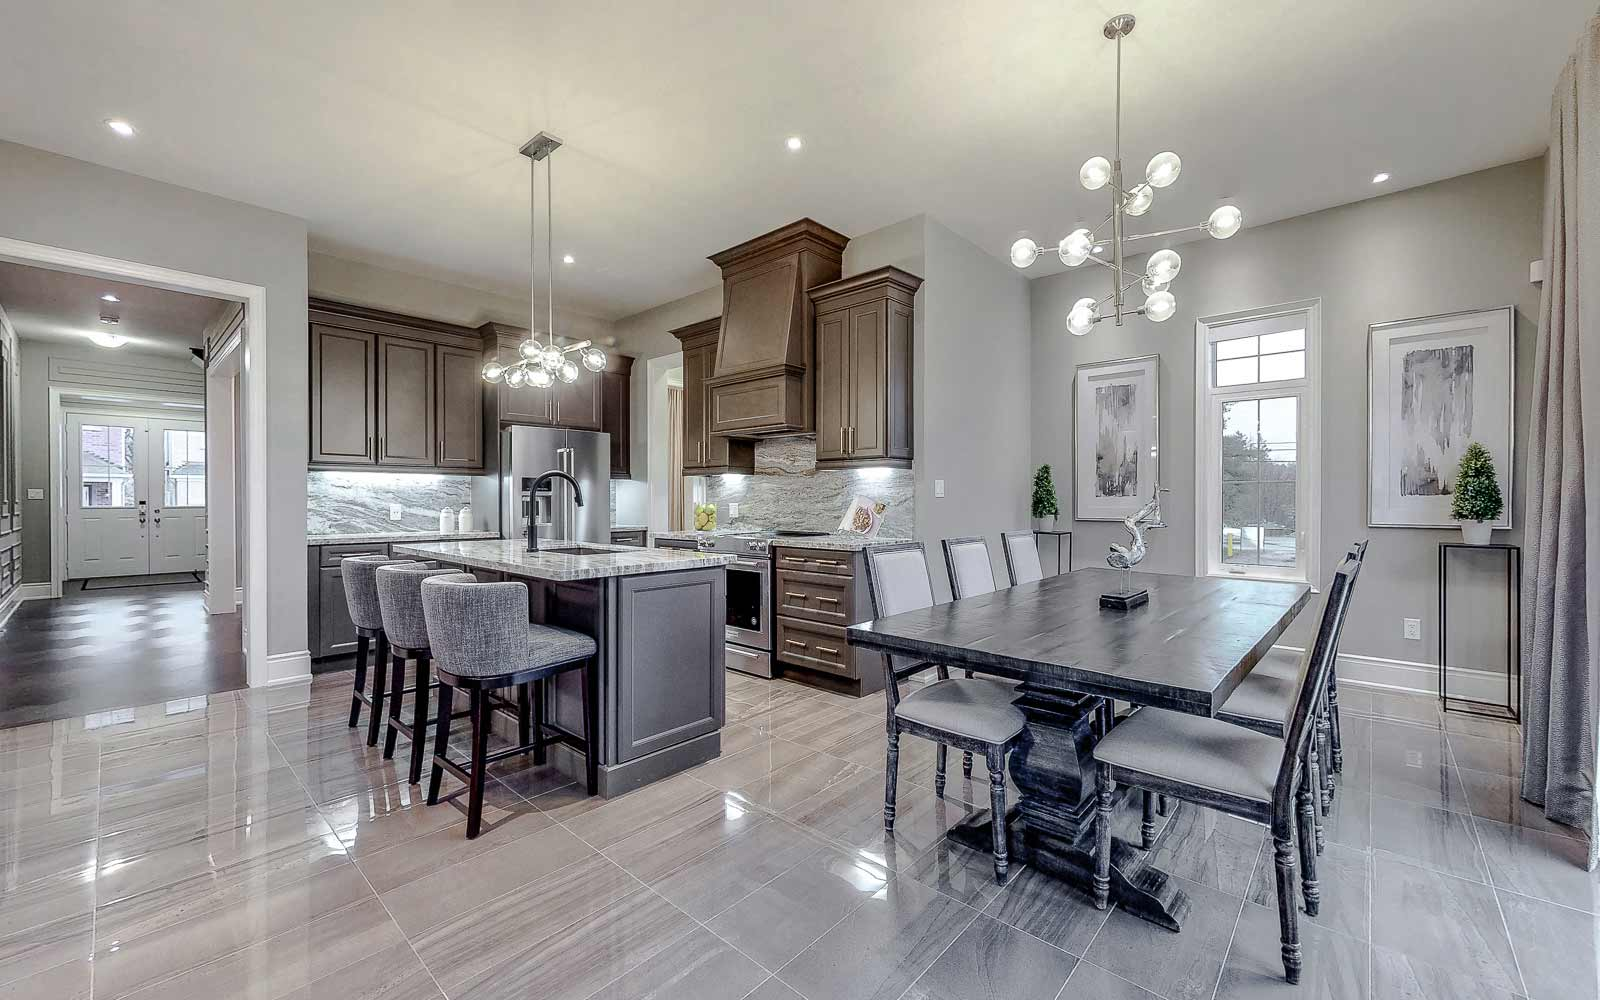 Kitchen in Amethyst Model Home at Woodhaven in Aurora, Ontario.